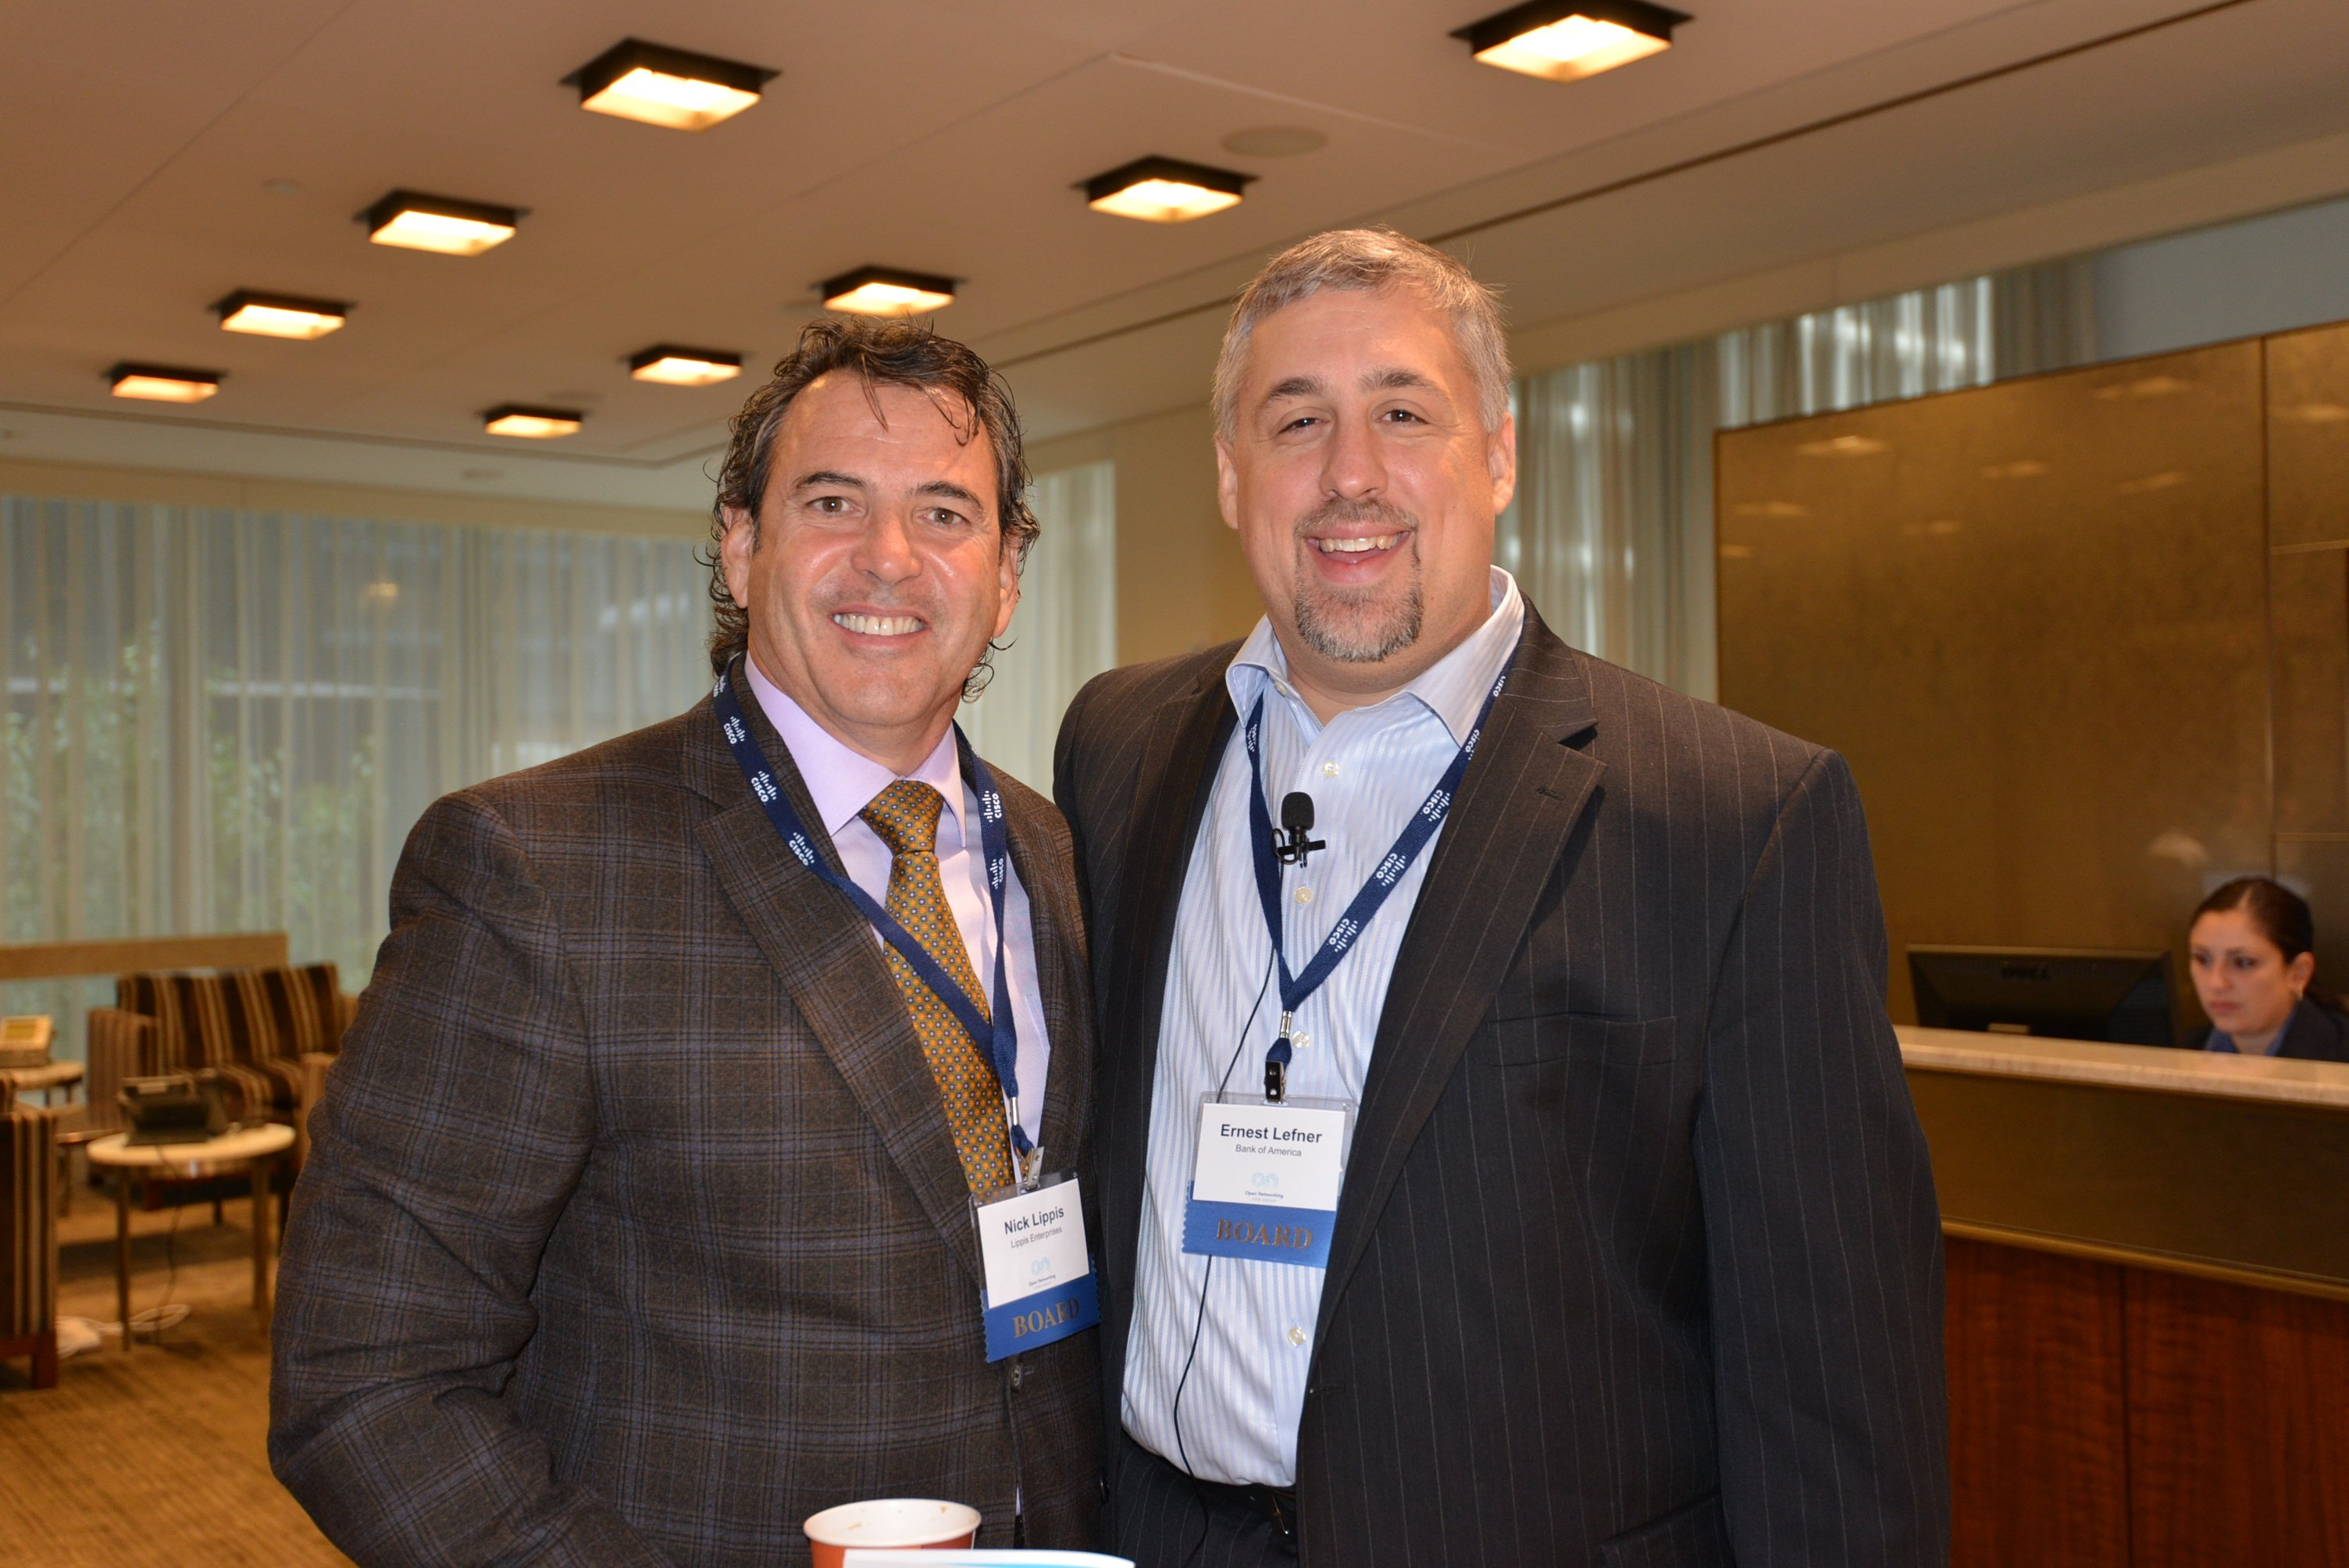 ONUG co-founders and co-chairmen, Nick Lippis and Ernest Lefner